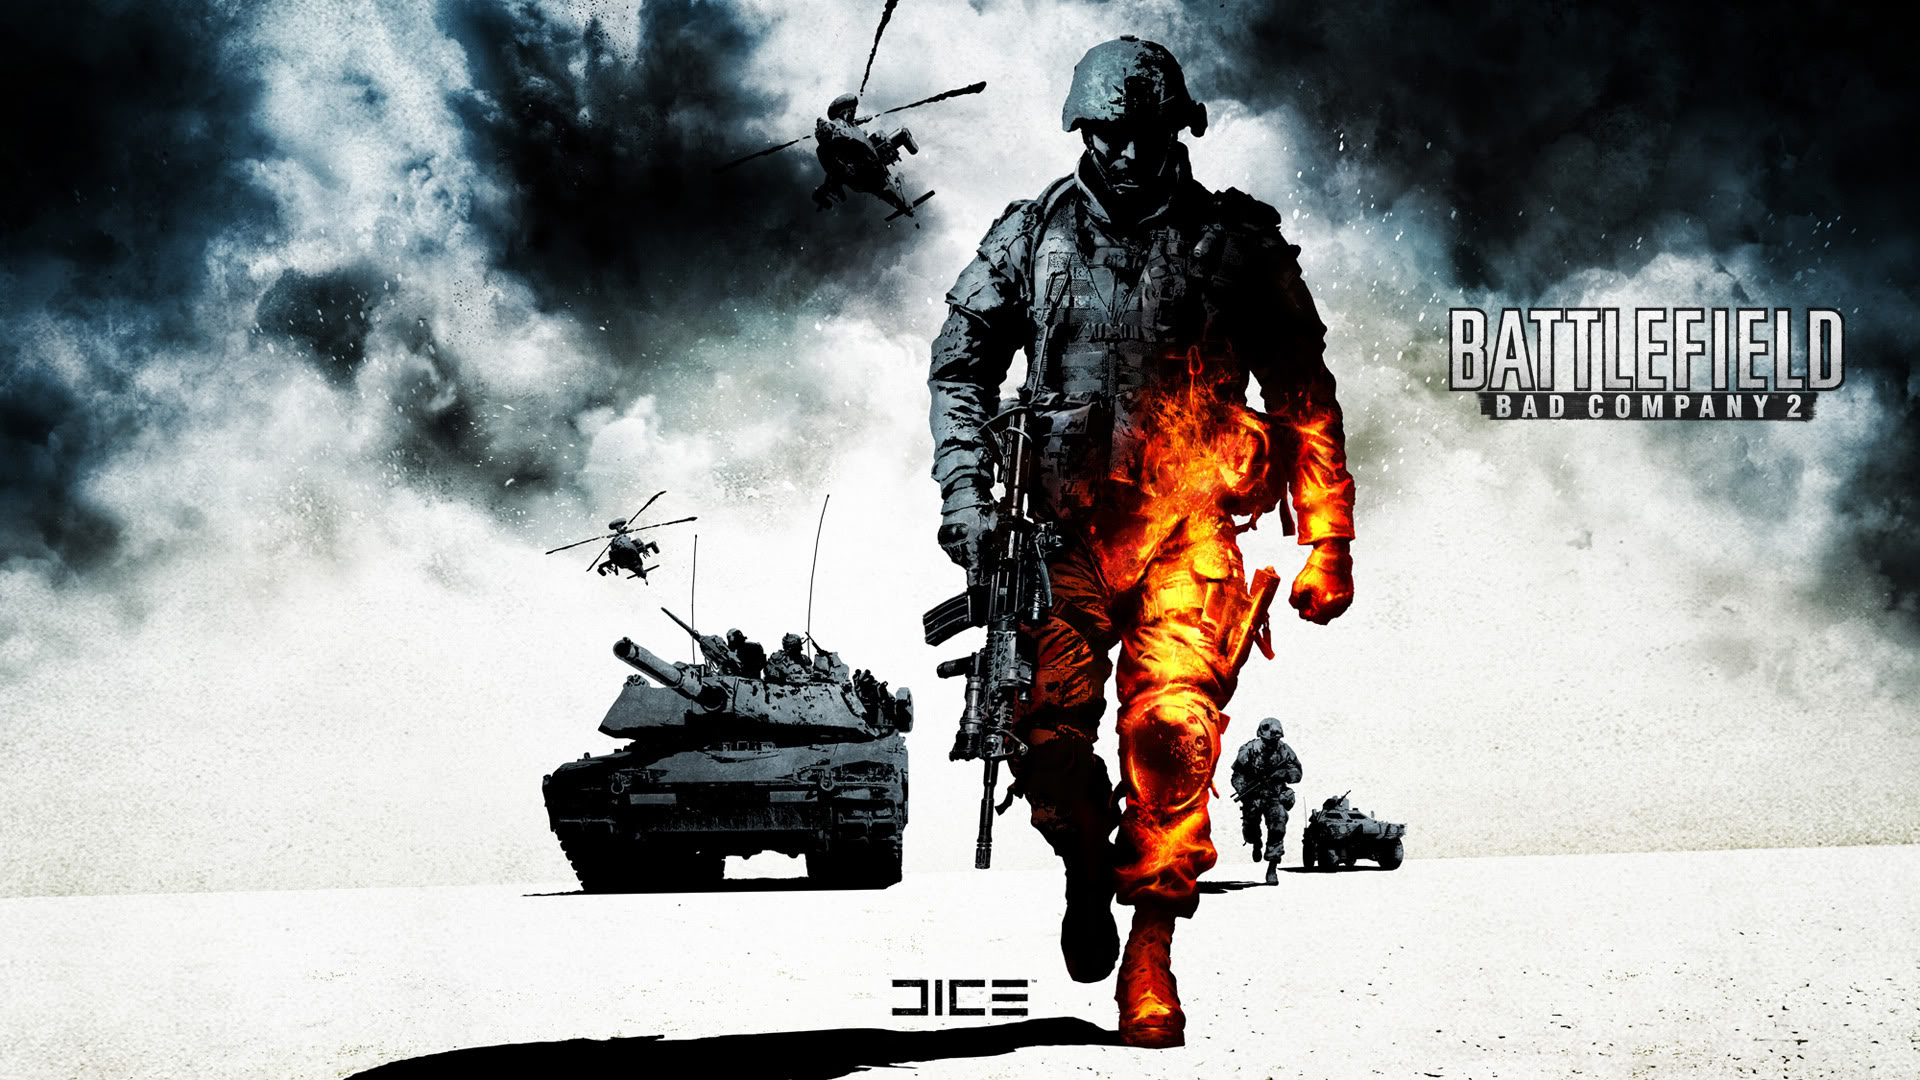 Battlefield bad company wallpaper - photo#2